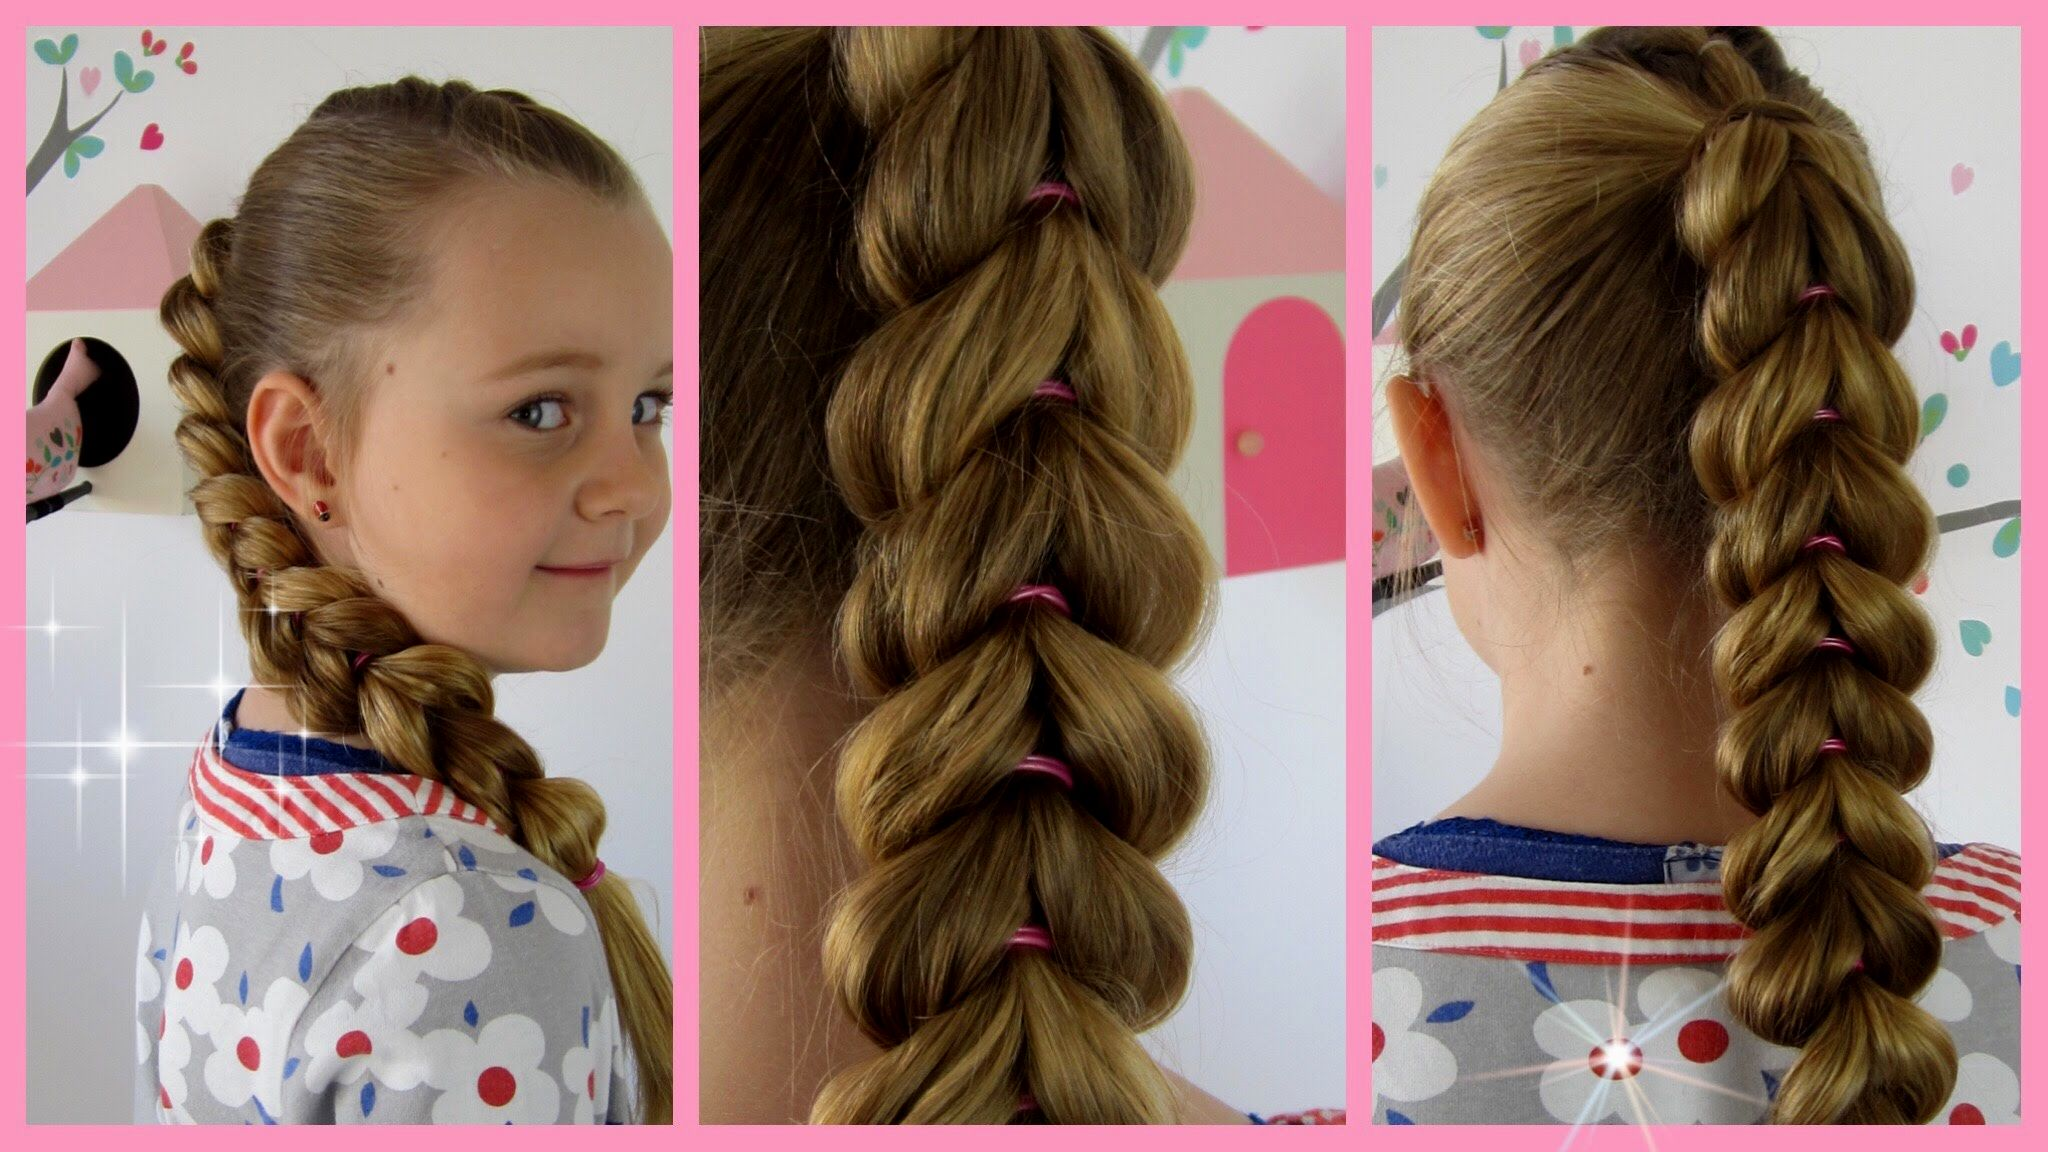 inspirational braids girls photo picture Cool braids girl concepts